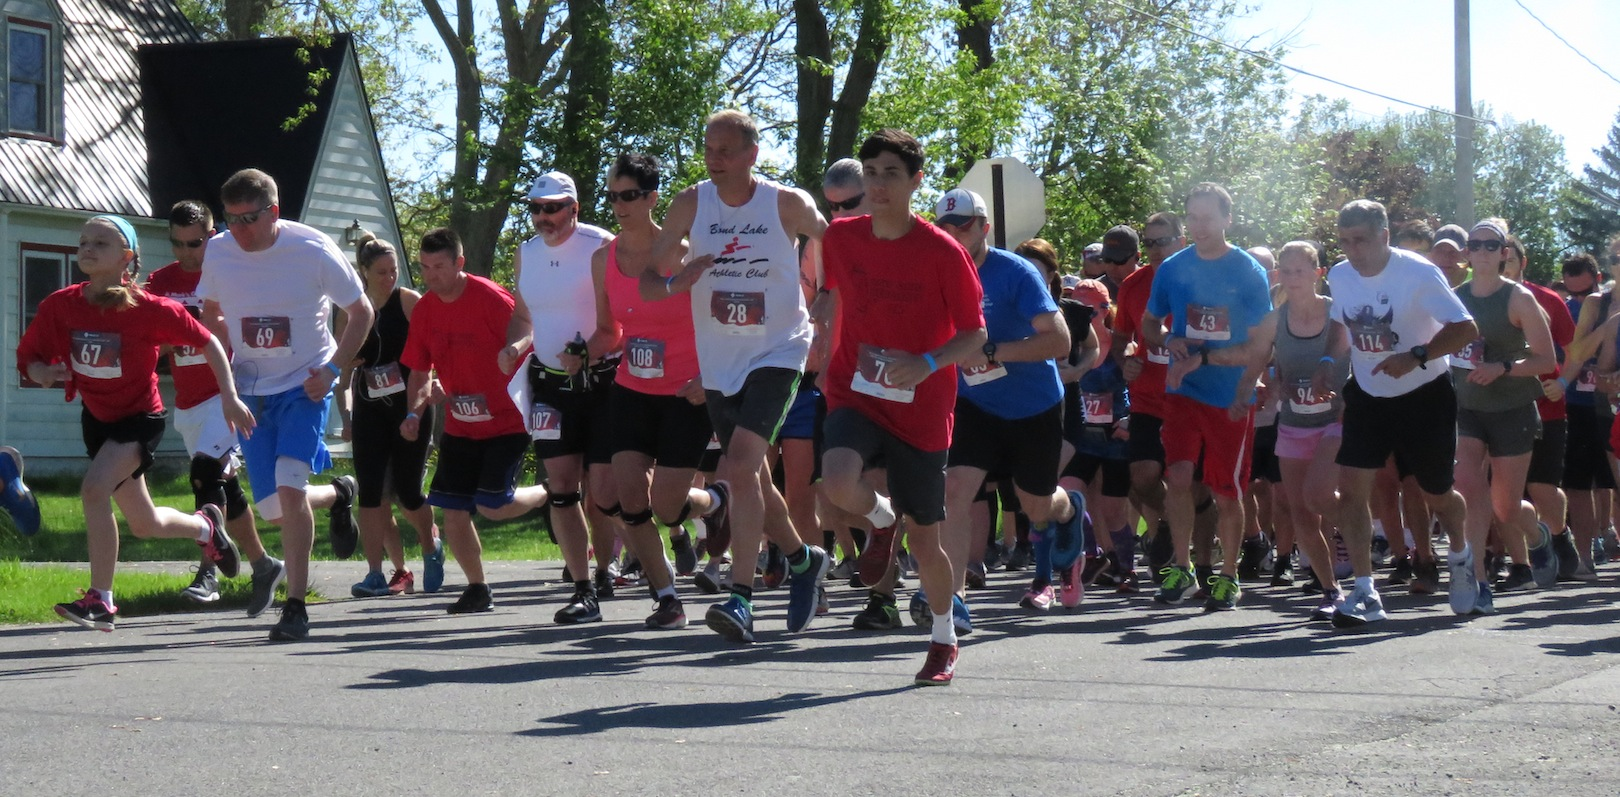 Runners take their first strides during the Bergholz 5K.